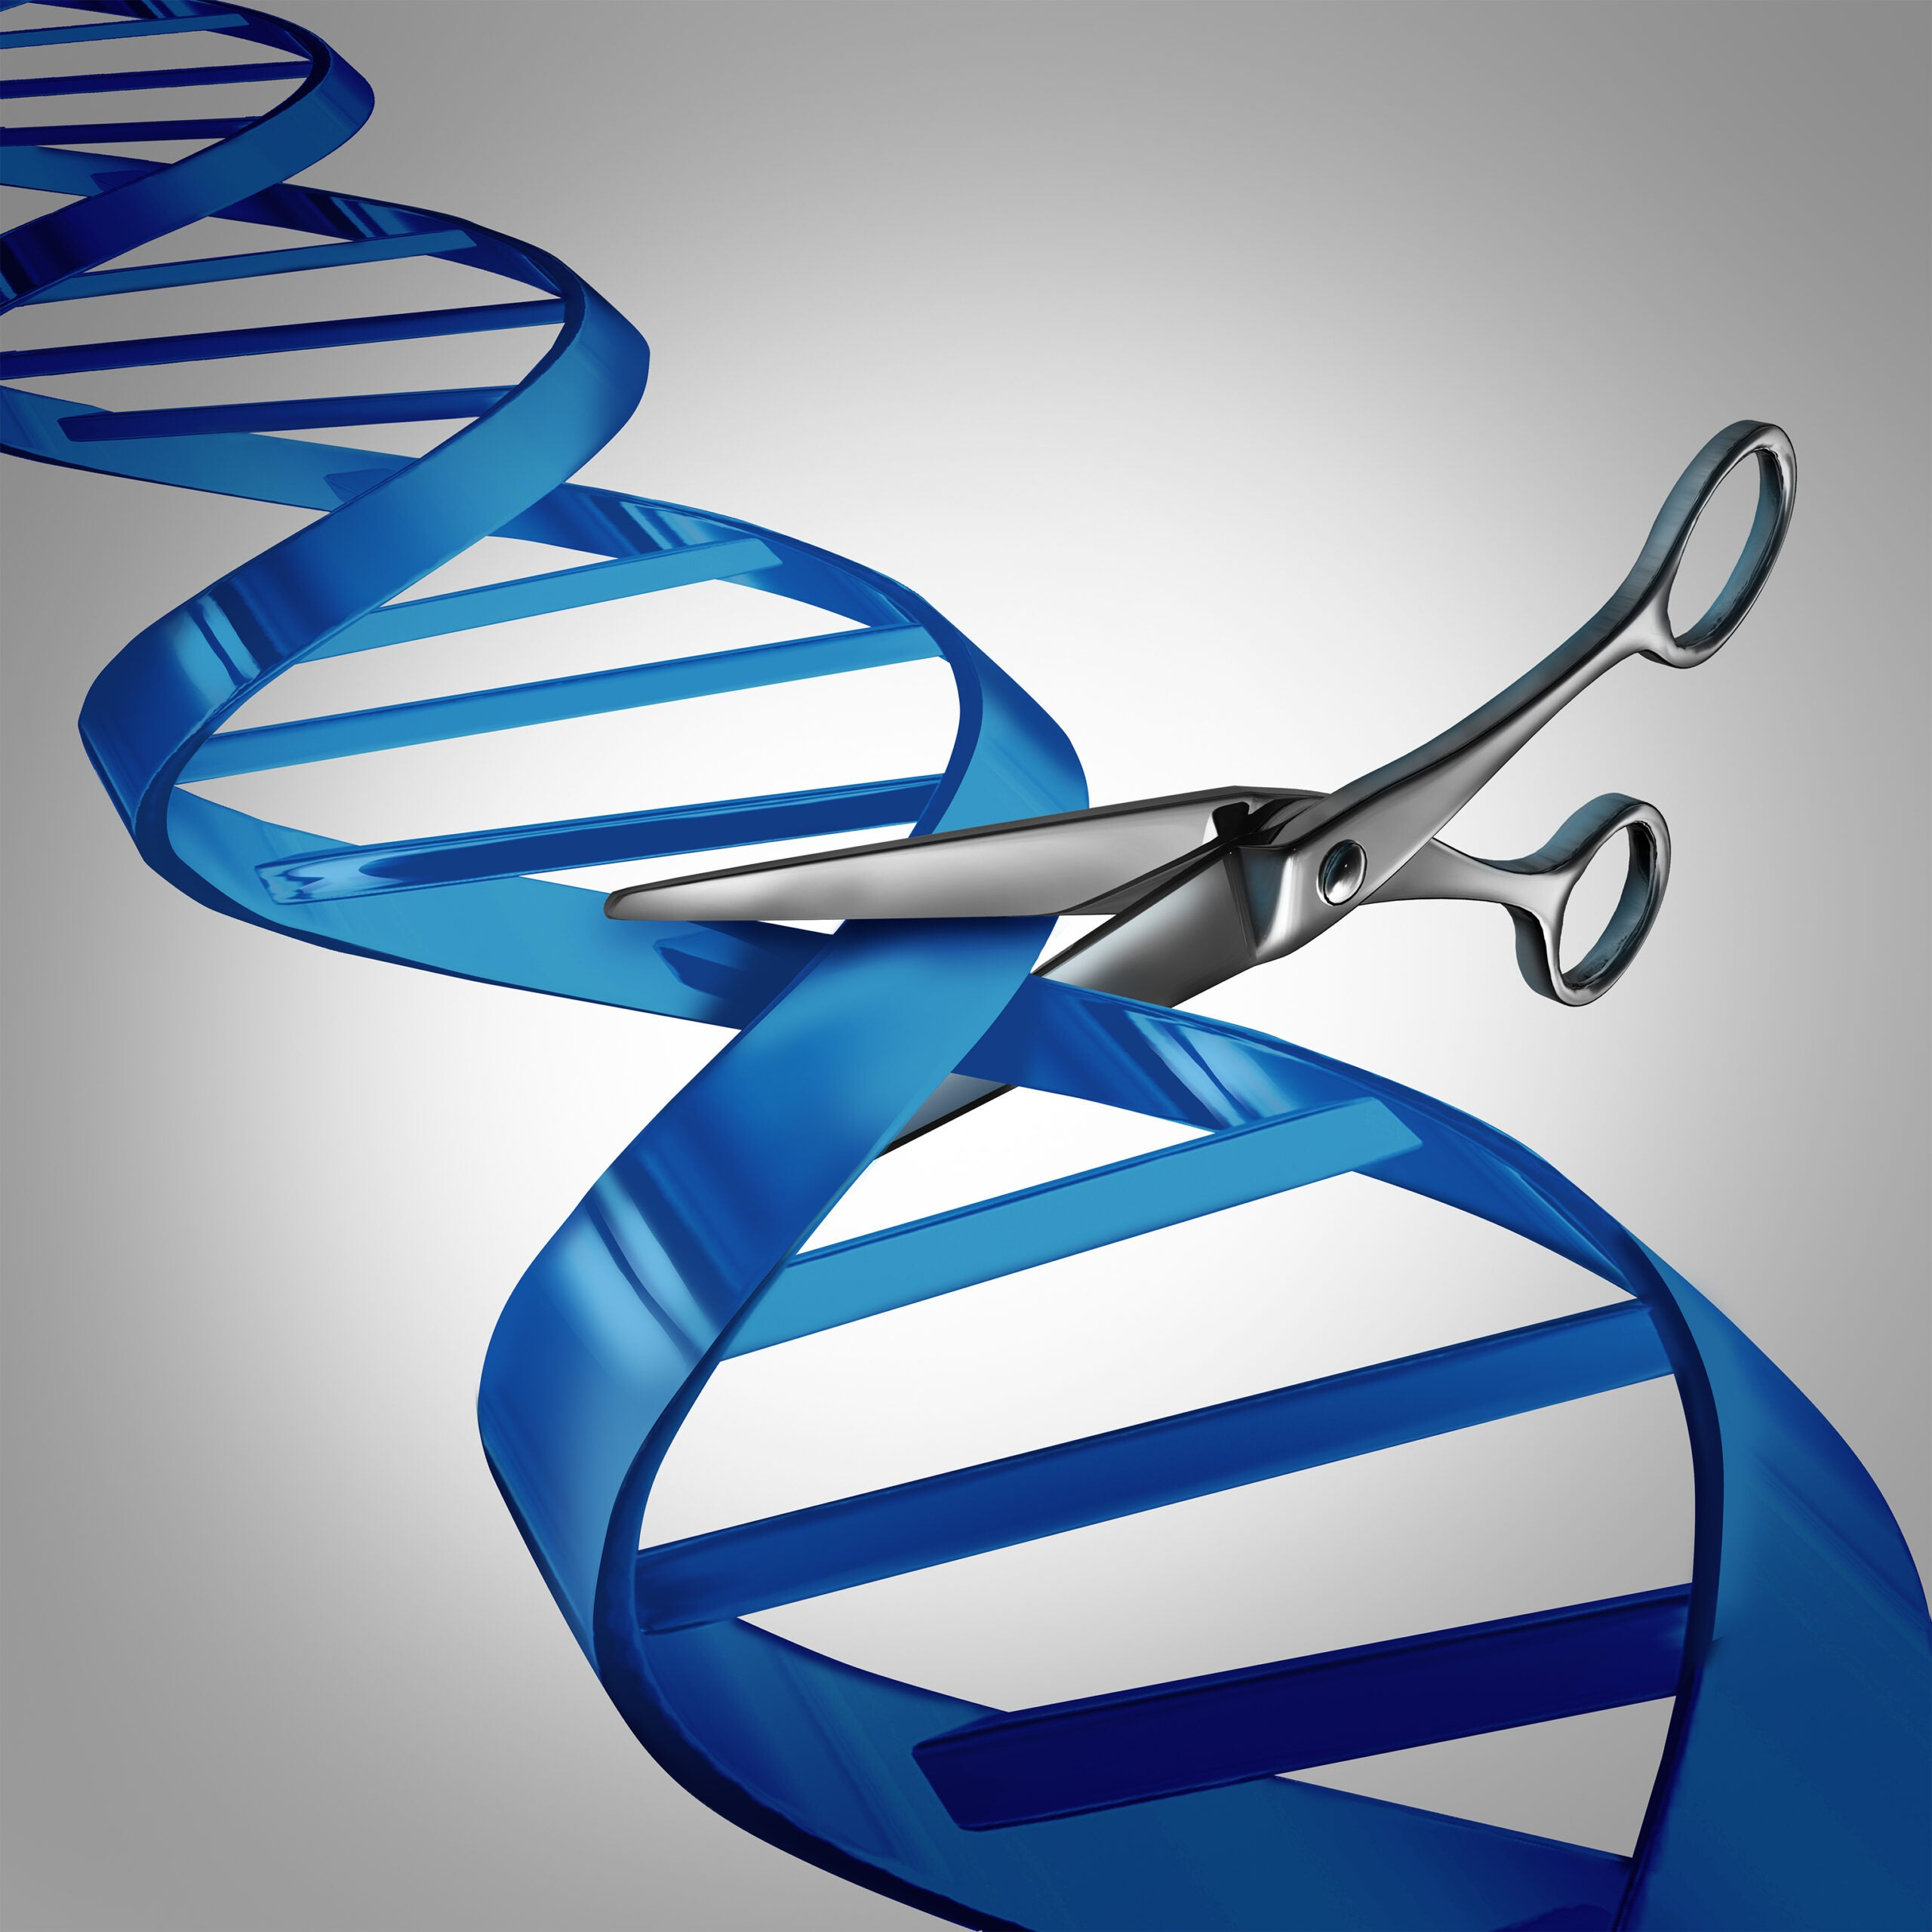 We need to police gene editing. The World Health Organization agrees.